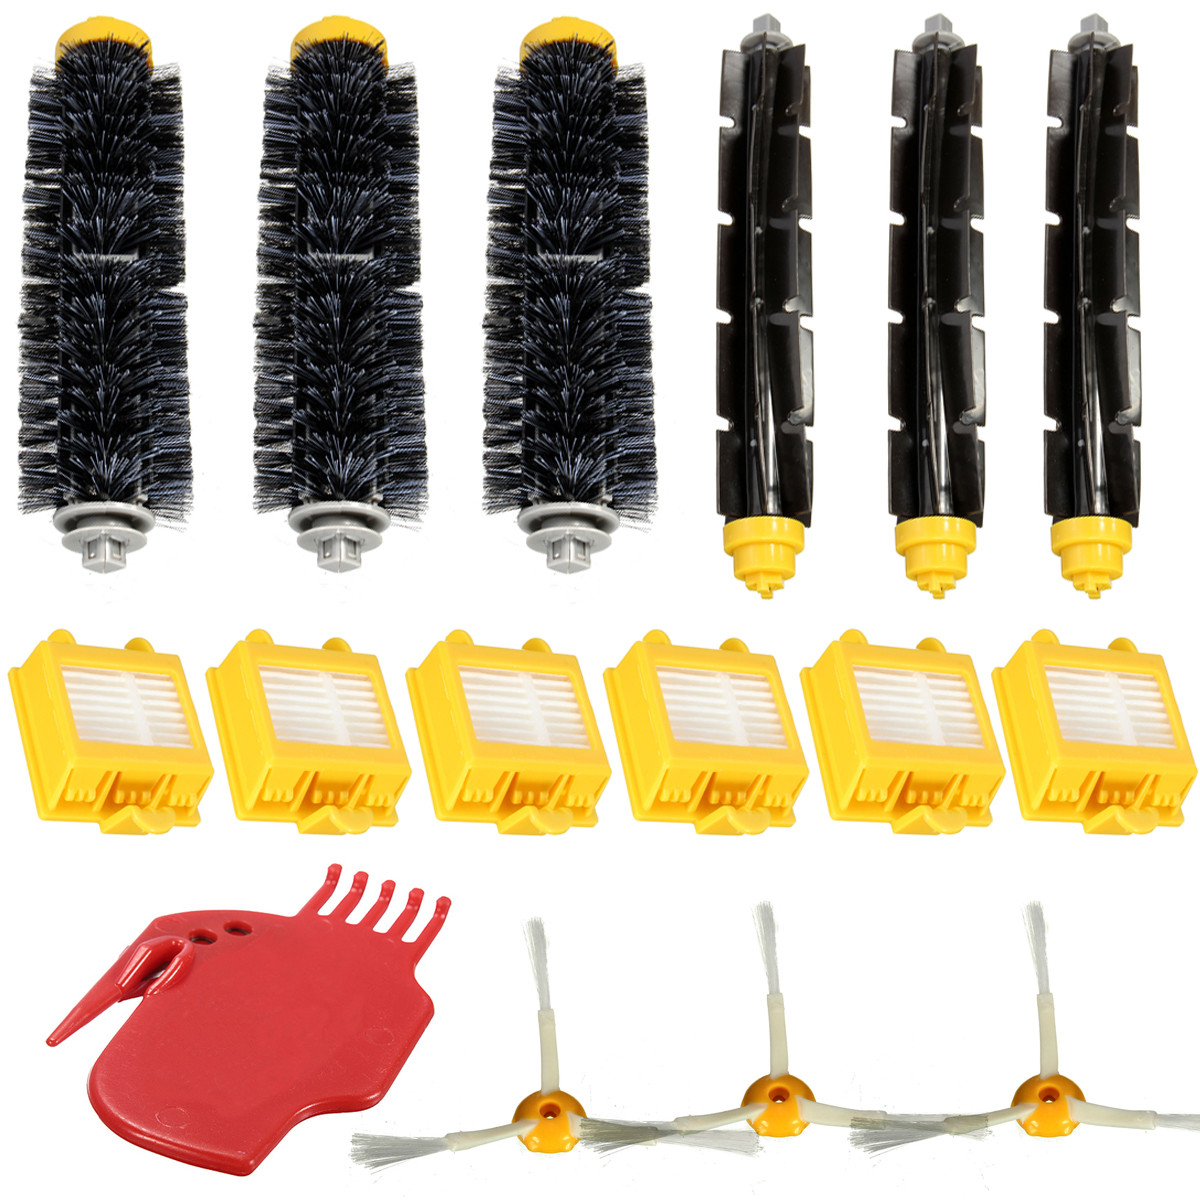 16Pcs Hepa Filters Brush Pack Replacement Kit 3 Armed for iRobot Roomba 700 Series 760 770 780